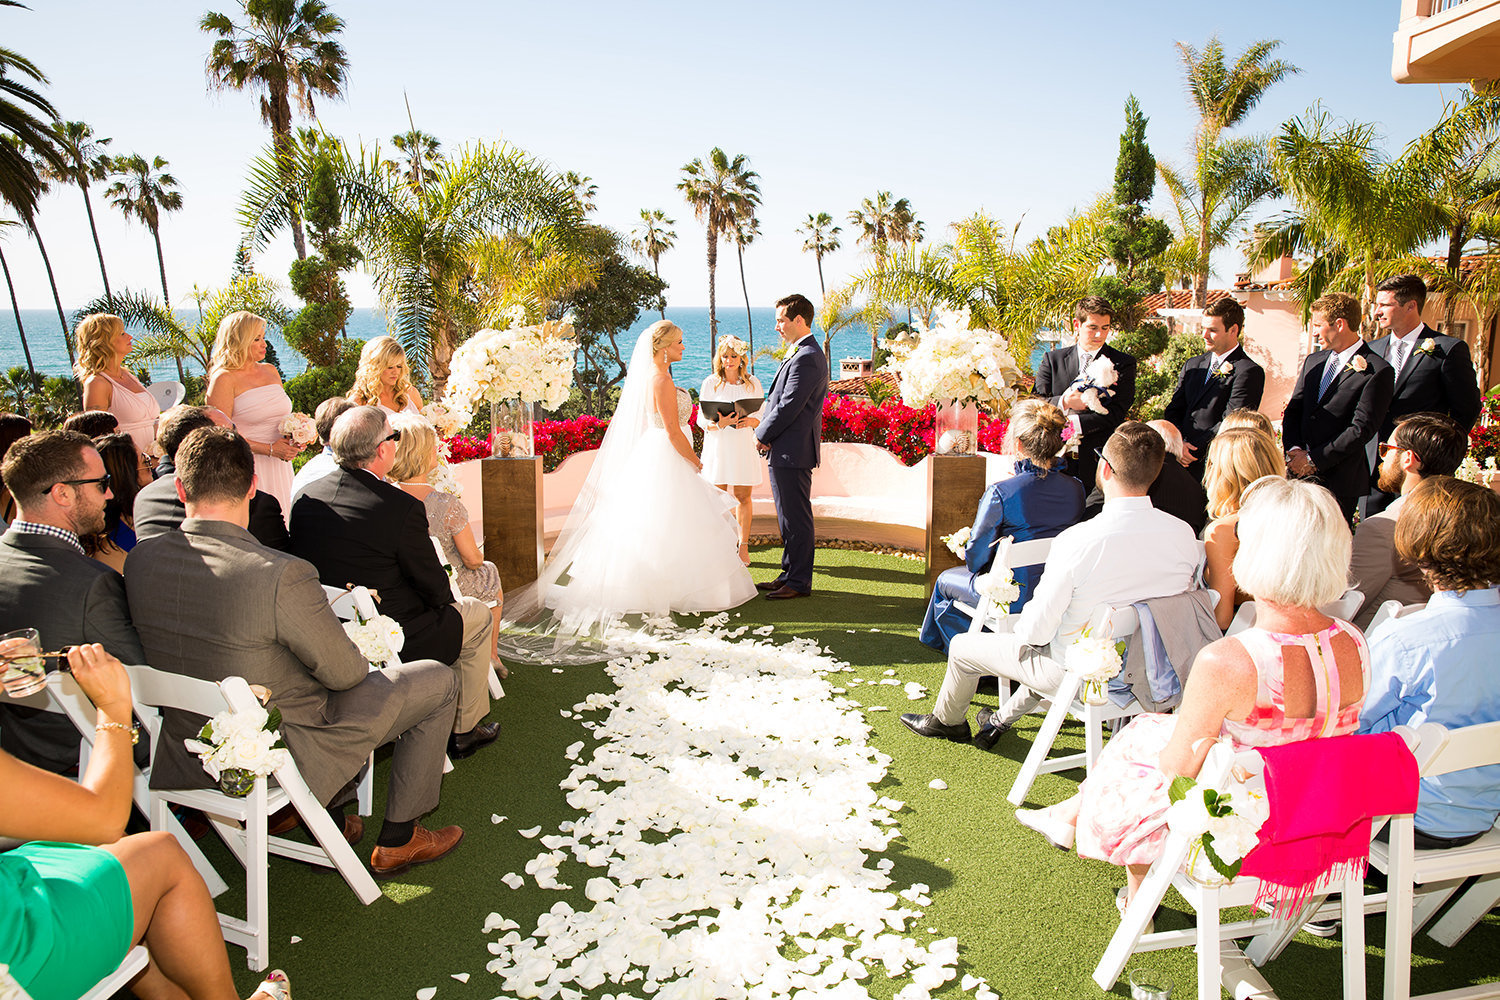 Spectacular wedding ceremony at La Valencia in La Jolla